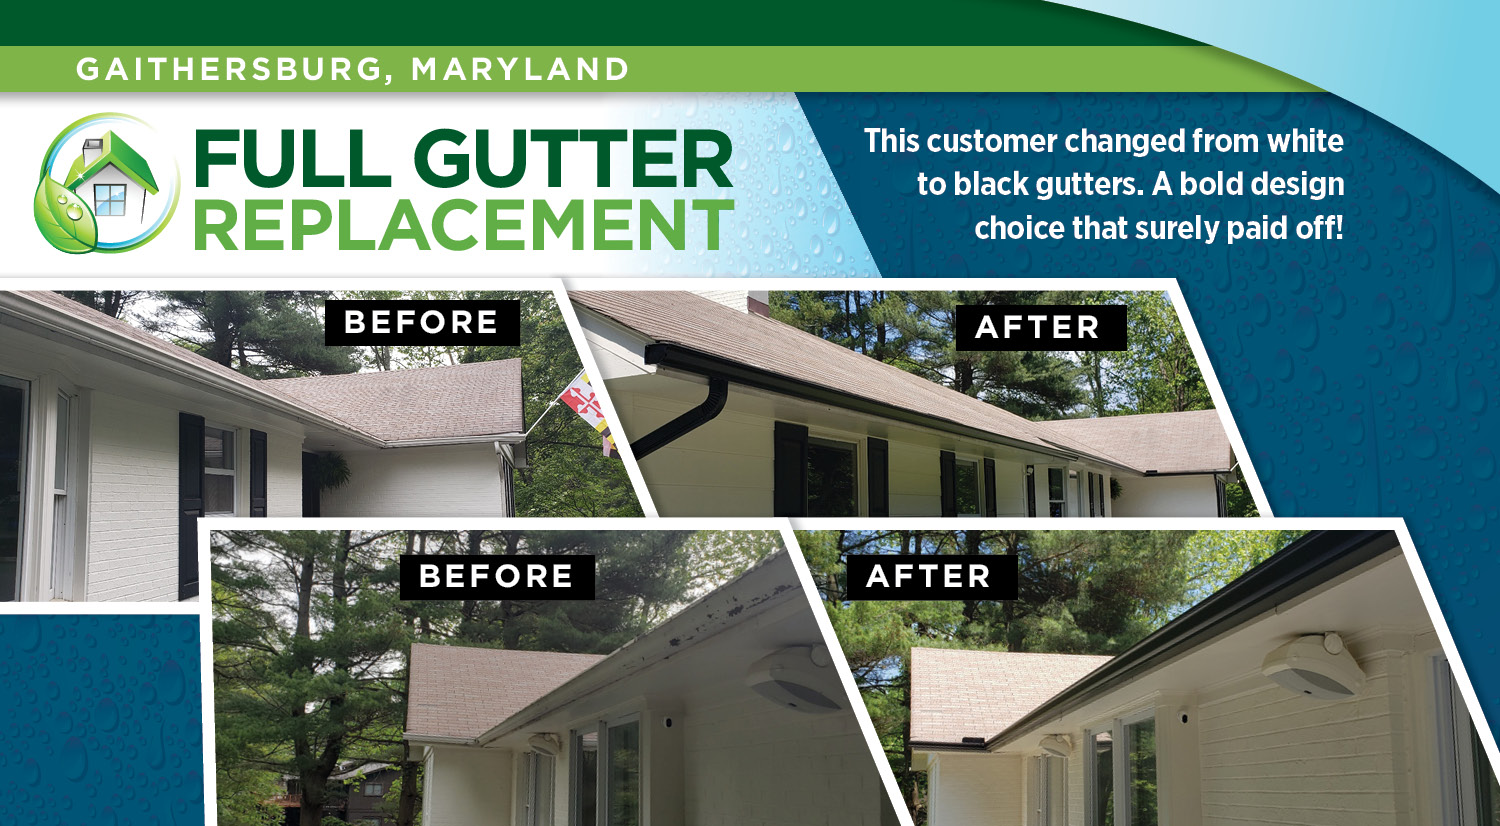 White to Black Gutters Before & After Image